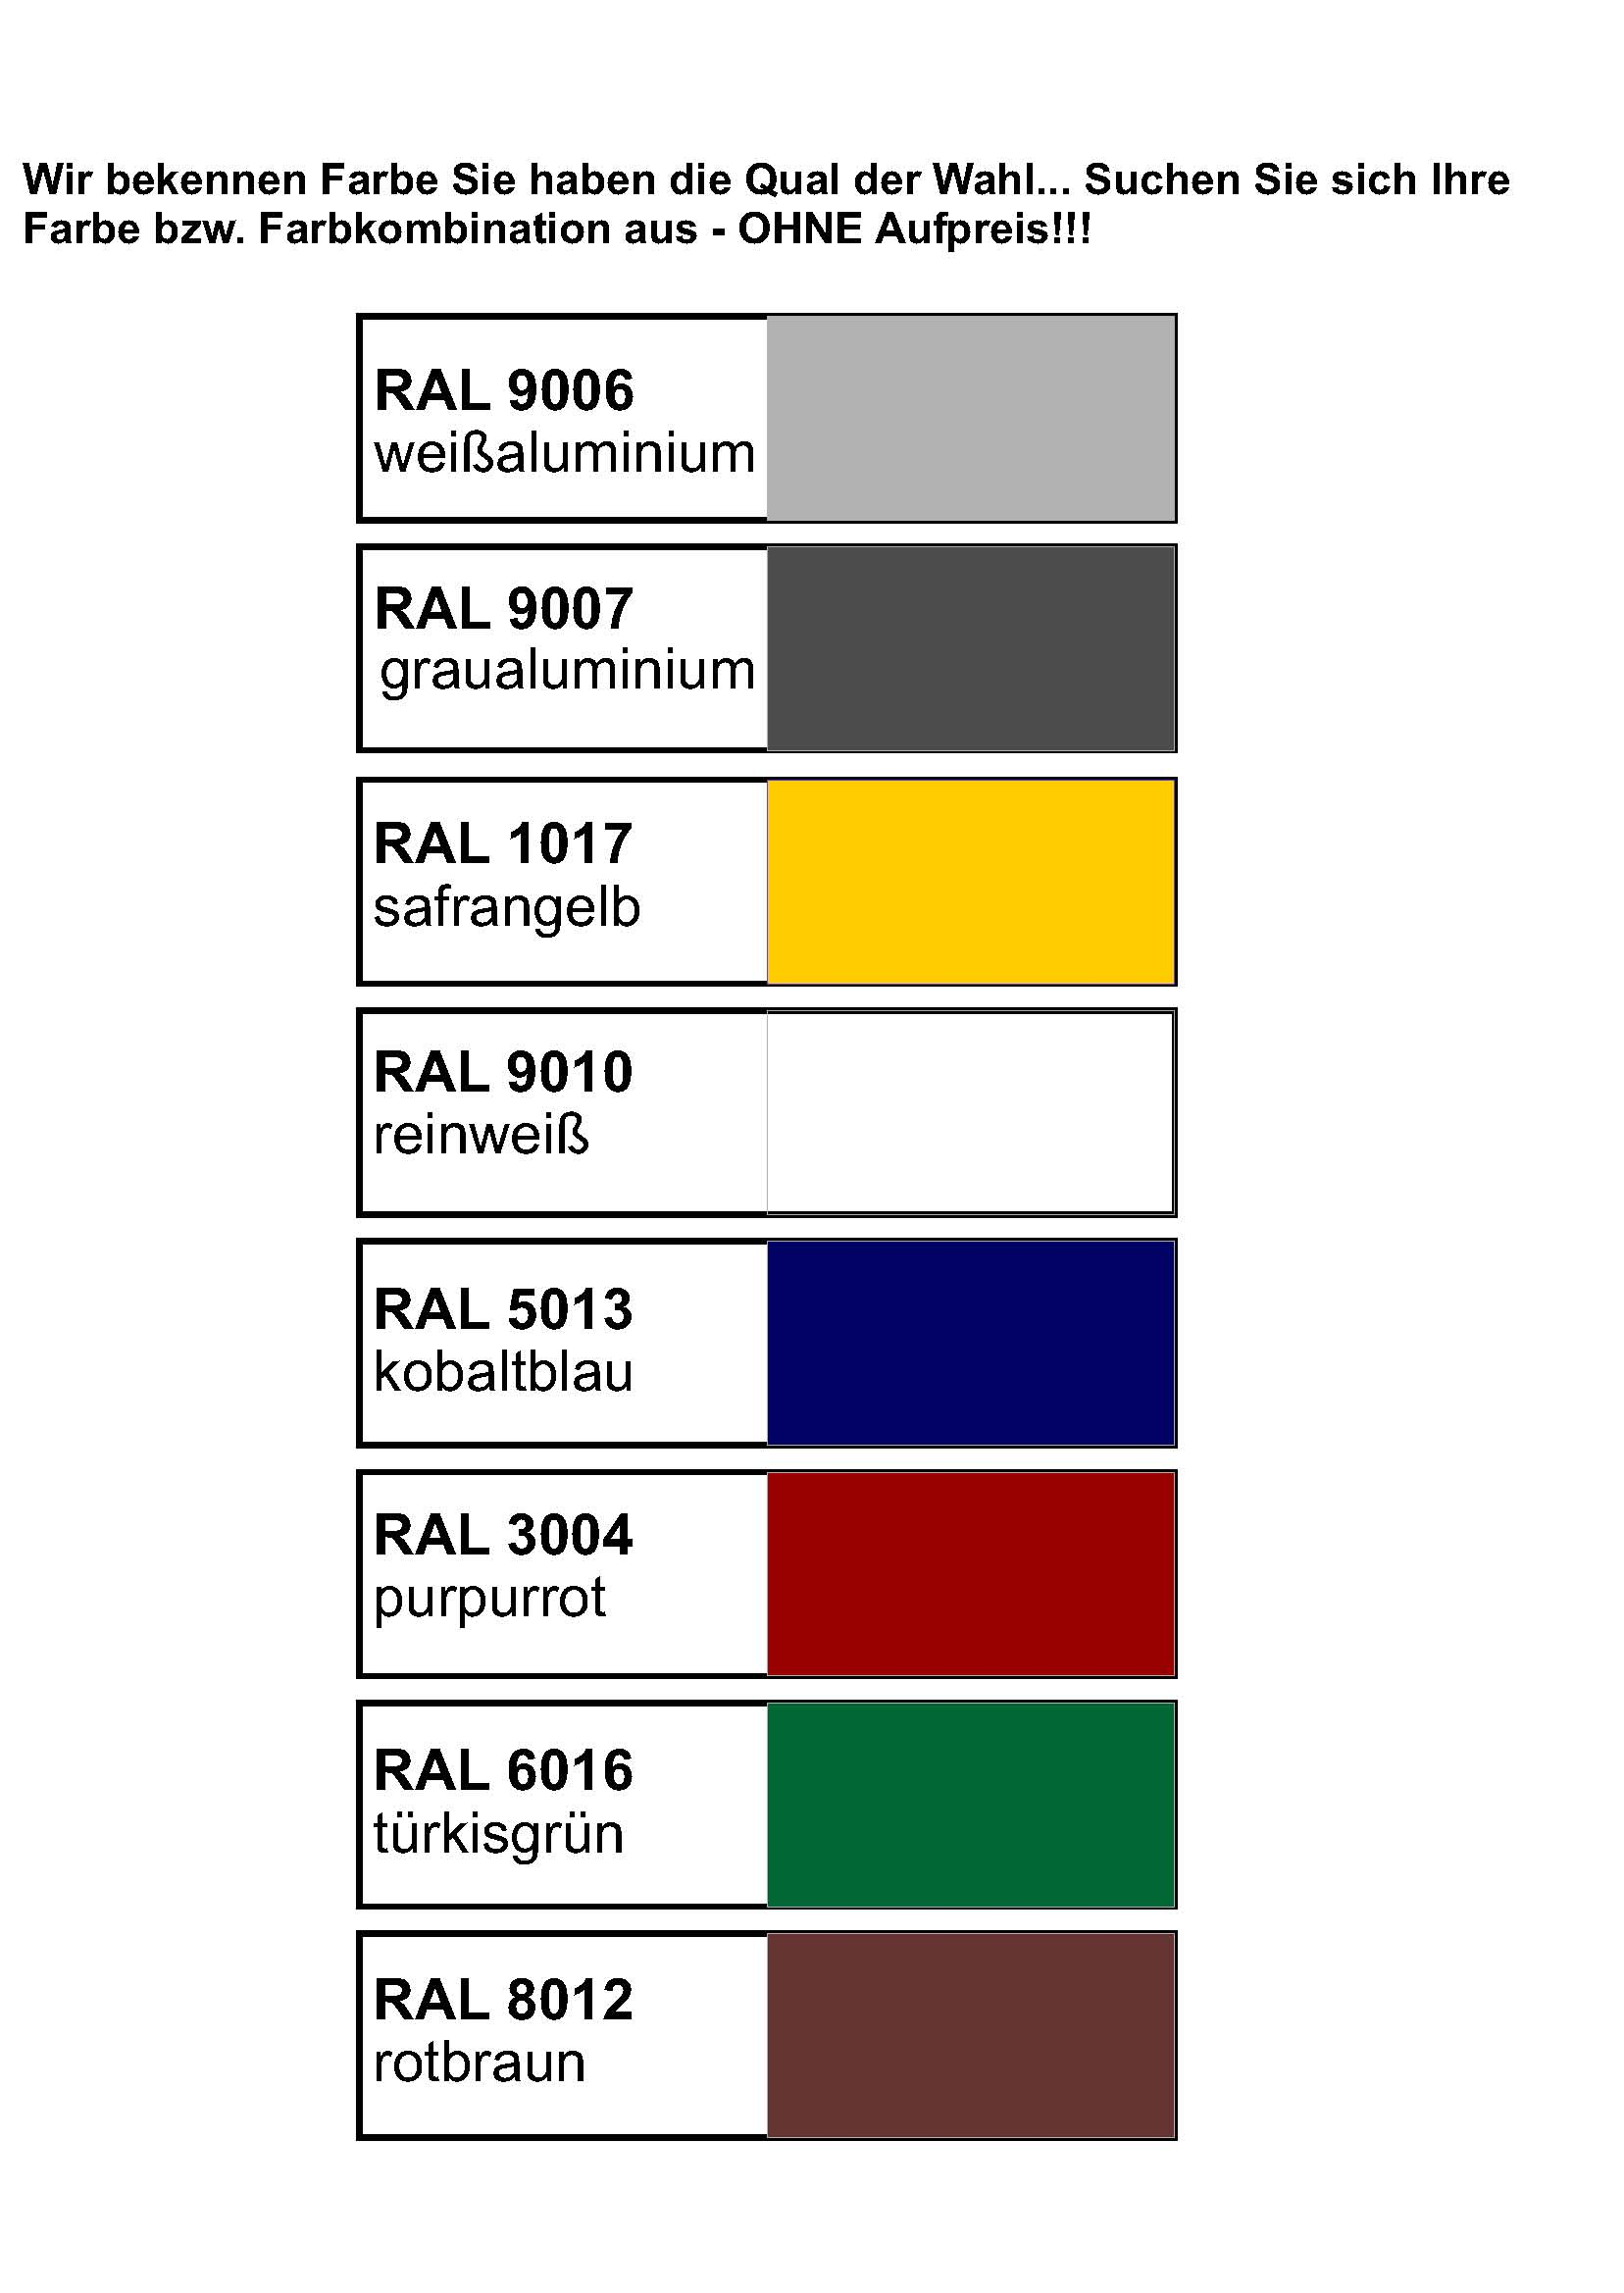 Ral Farben Metall Dekoschale Metall Oval In Farbe Nach Ral